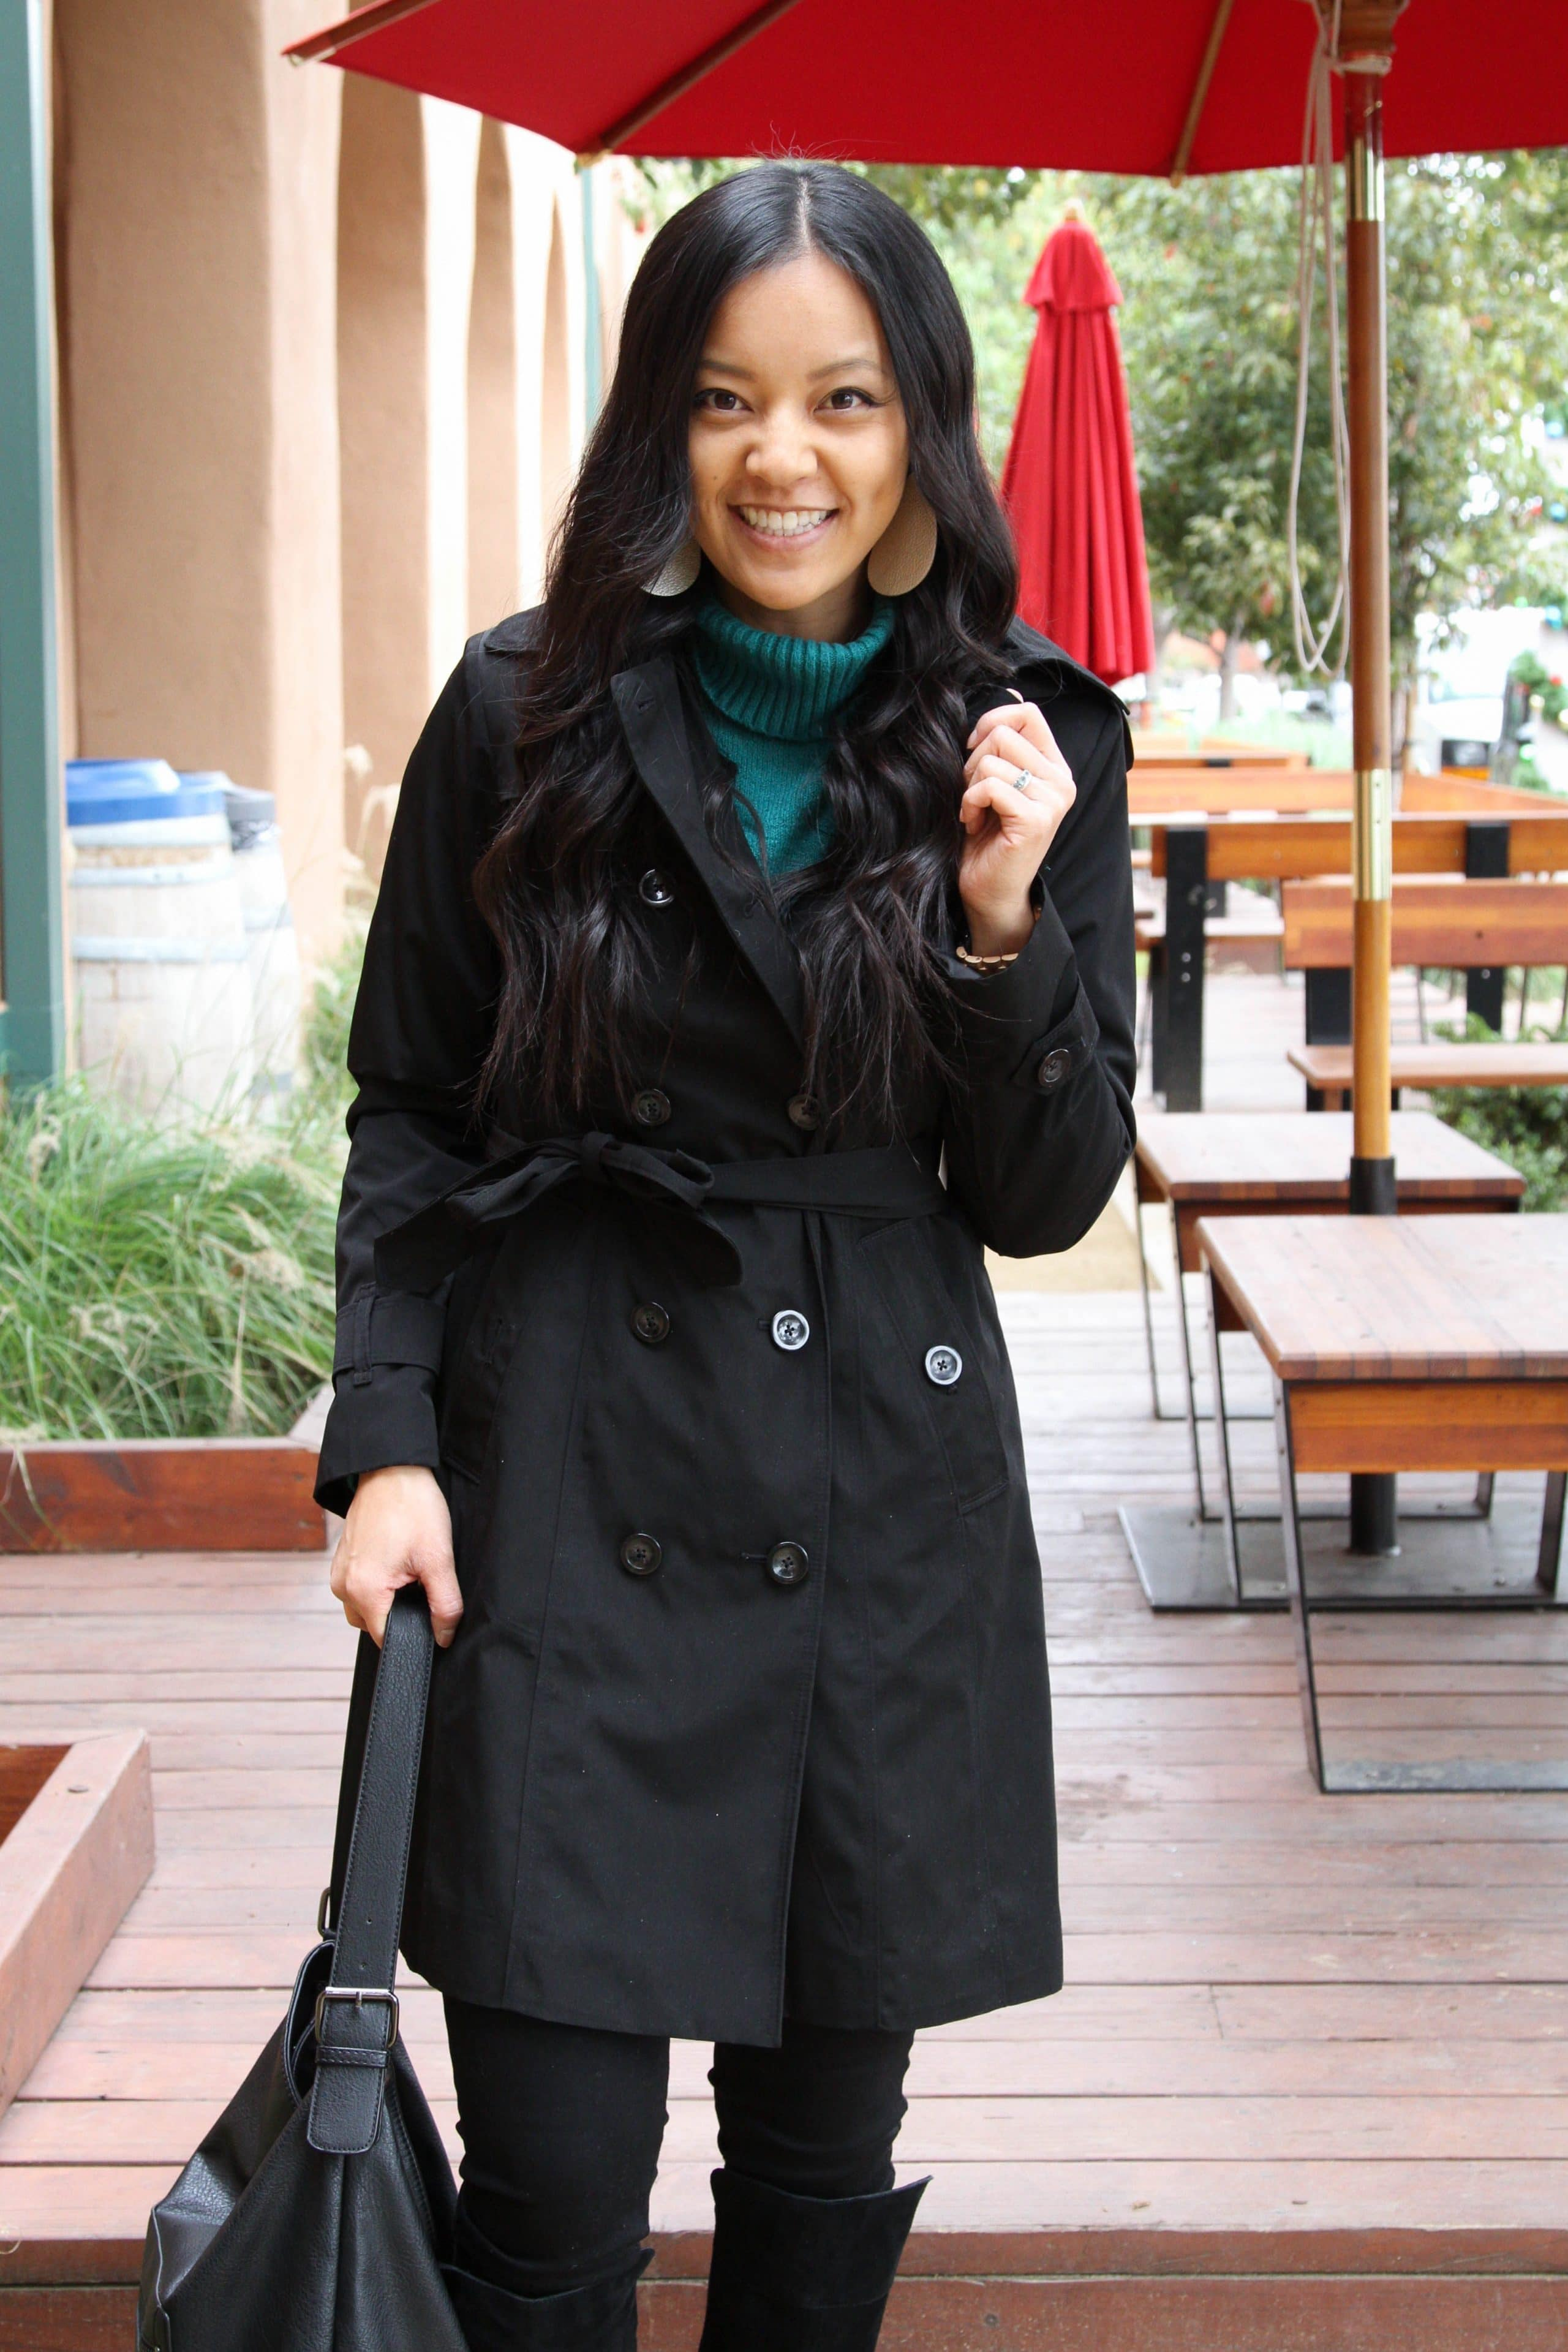 Black Trench Coat + Green Sweater + Black bag